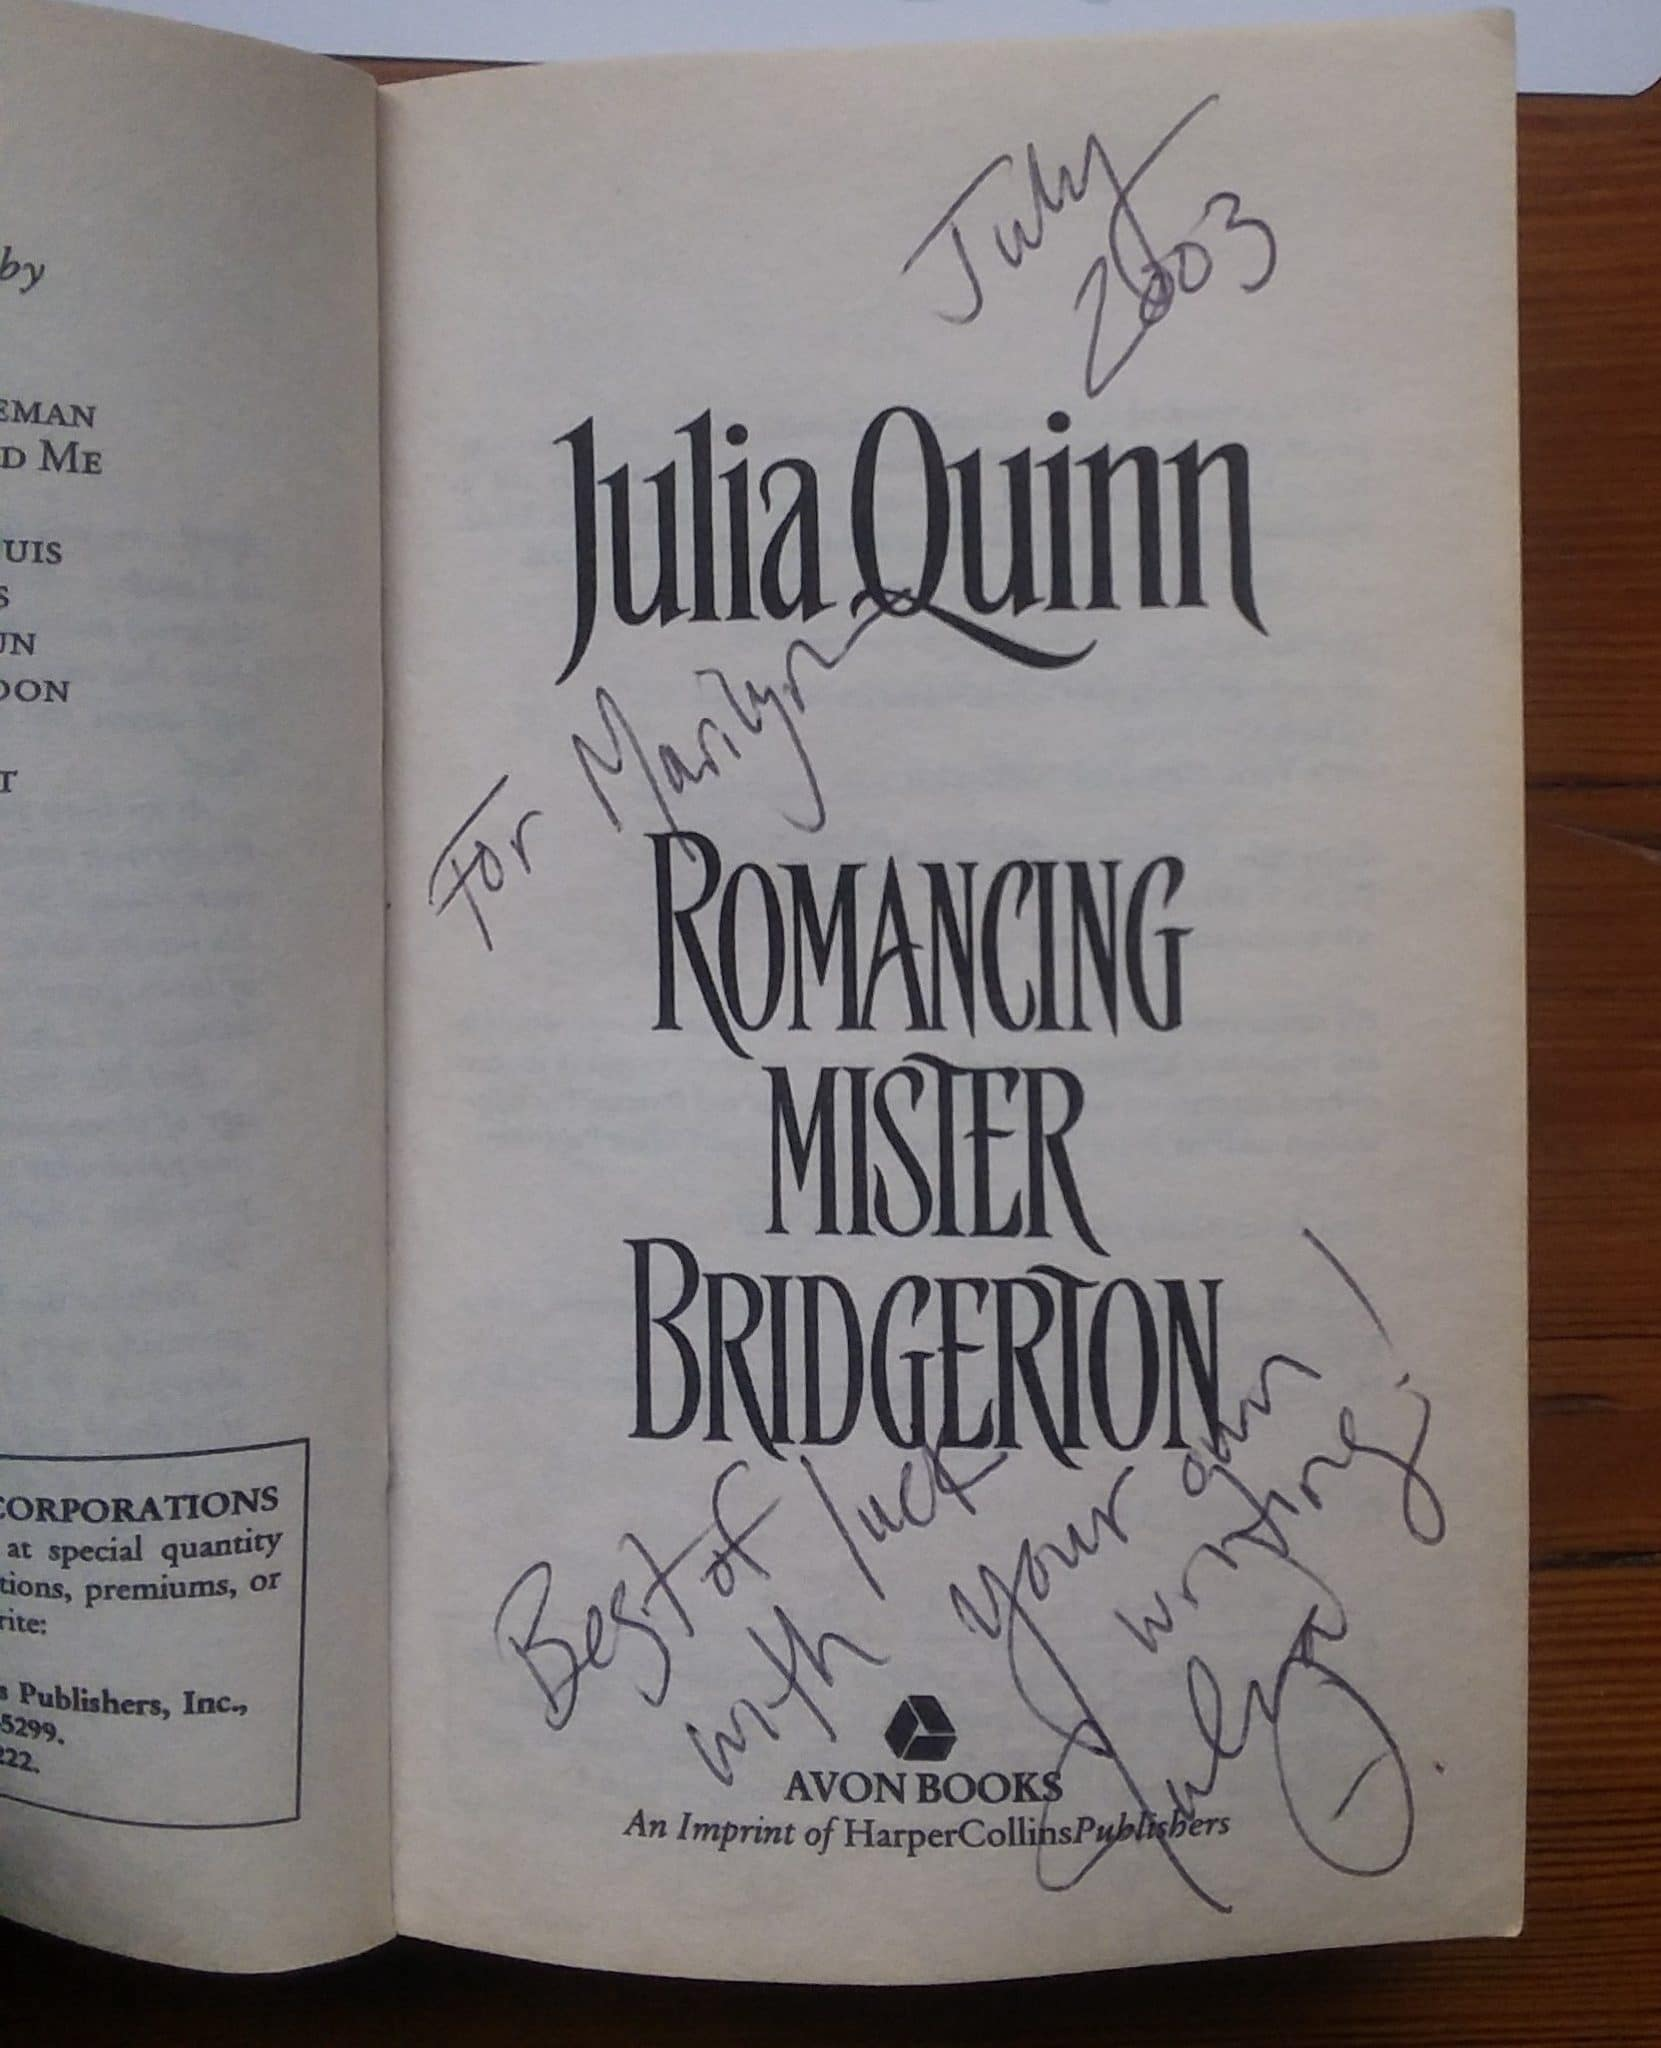 the cover page of Romancing Mister Bridgerton autographed by author Julia Quinn